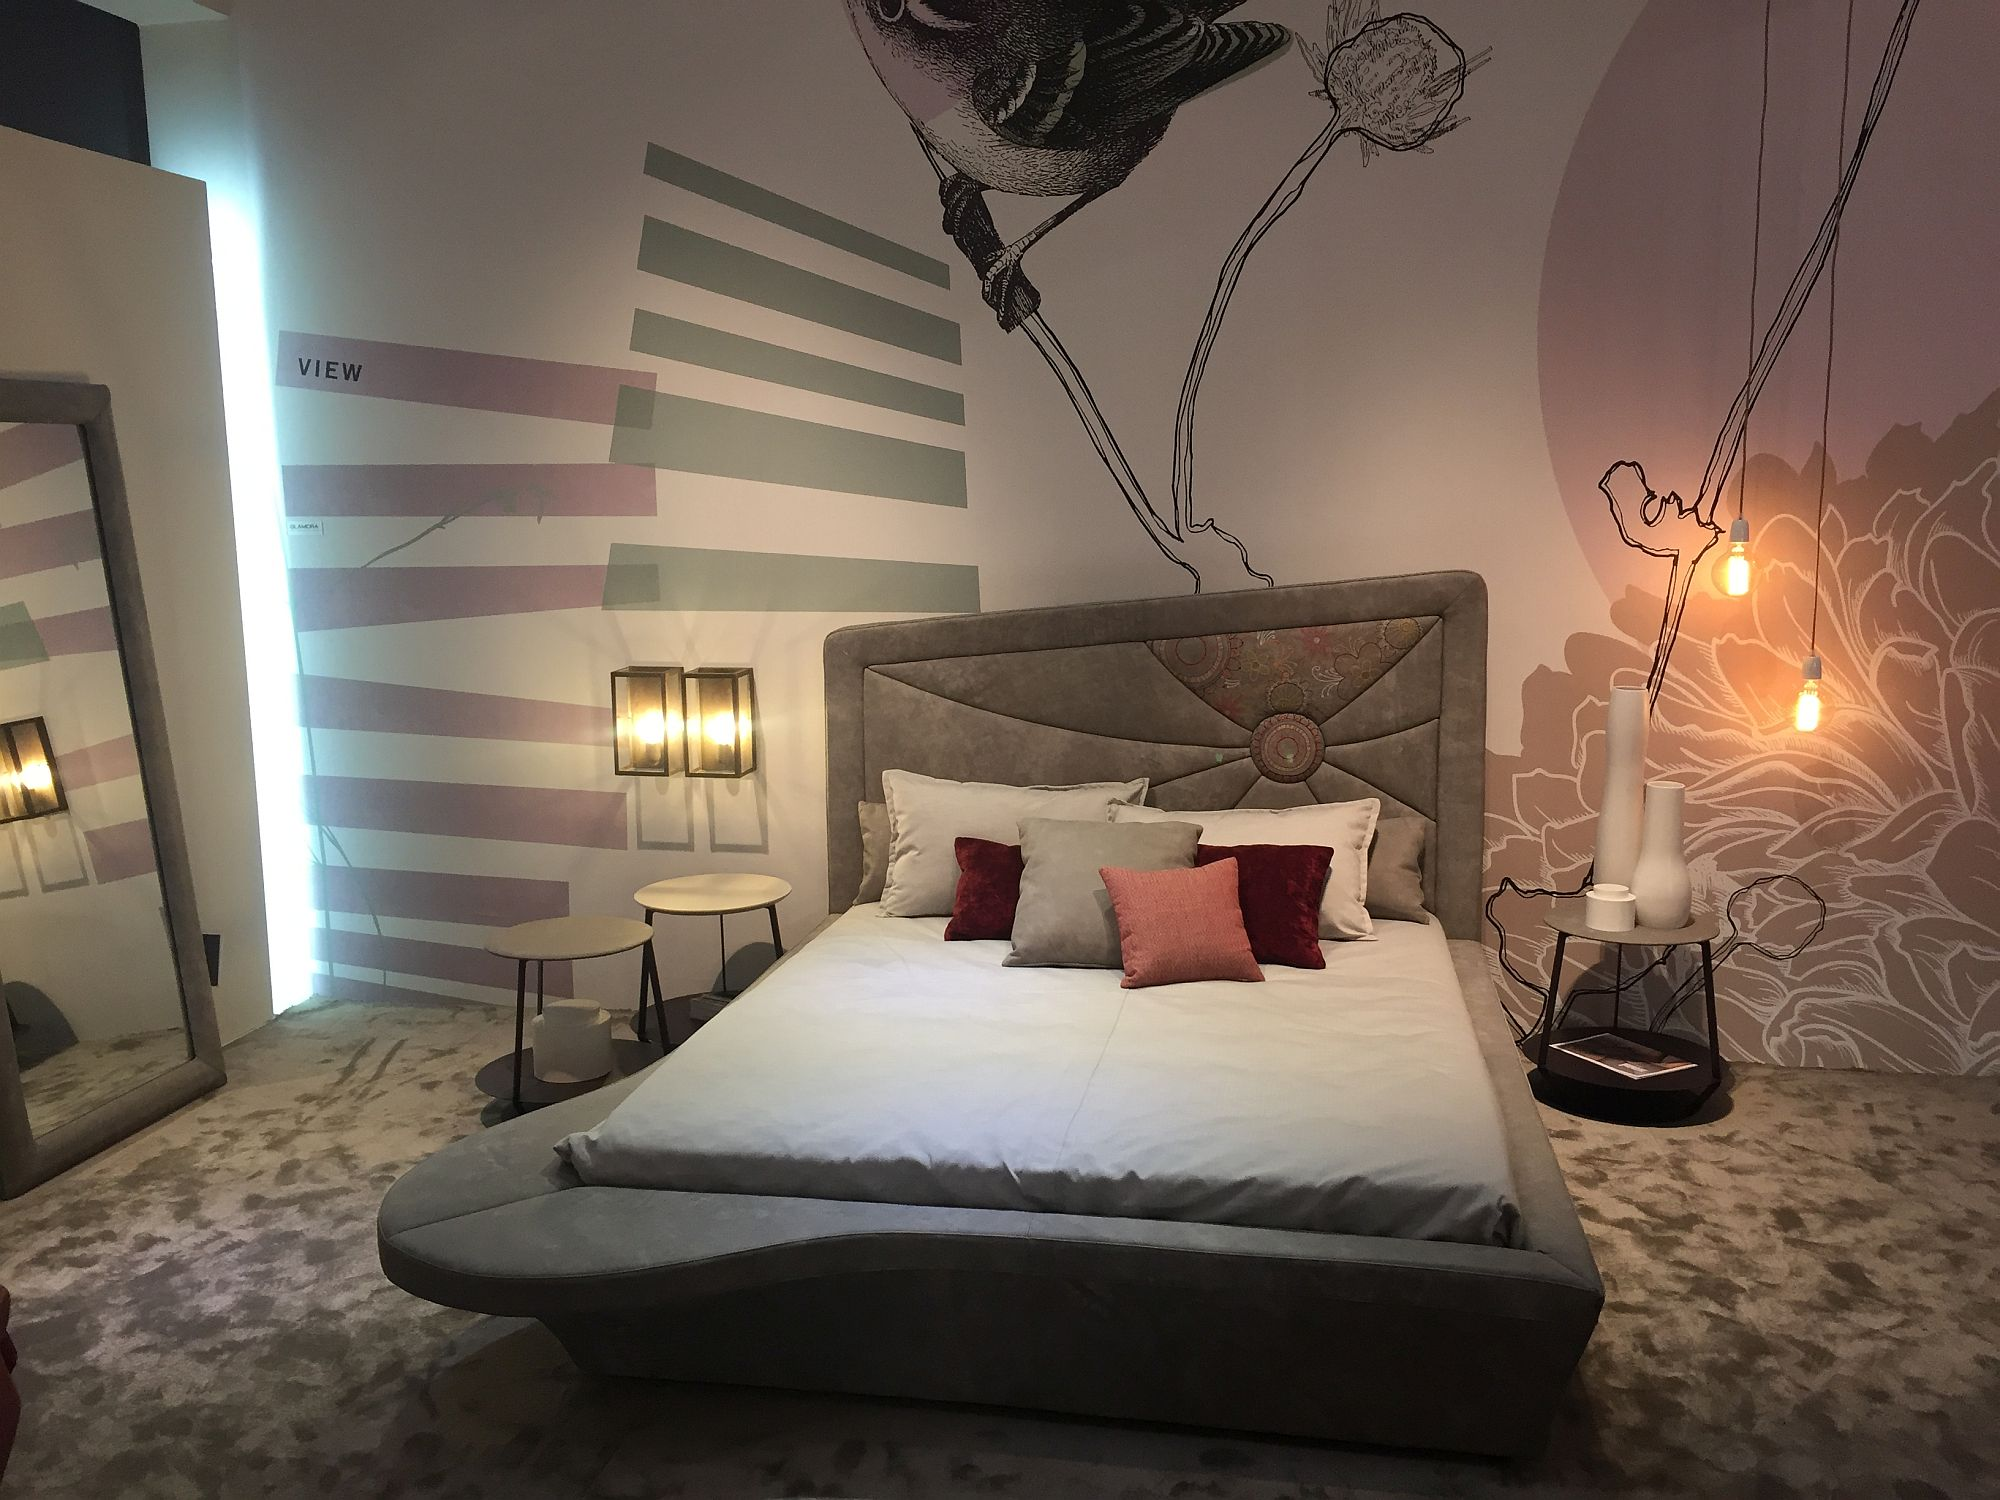 20 contemporary headboard ideas for the modern bedroom - Bed without headboard ideas ...